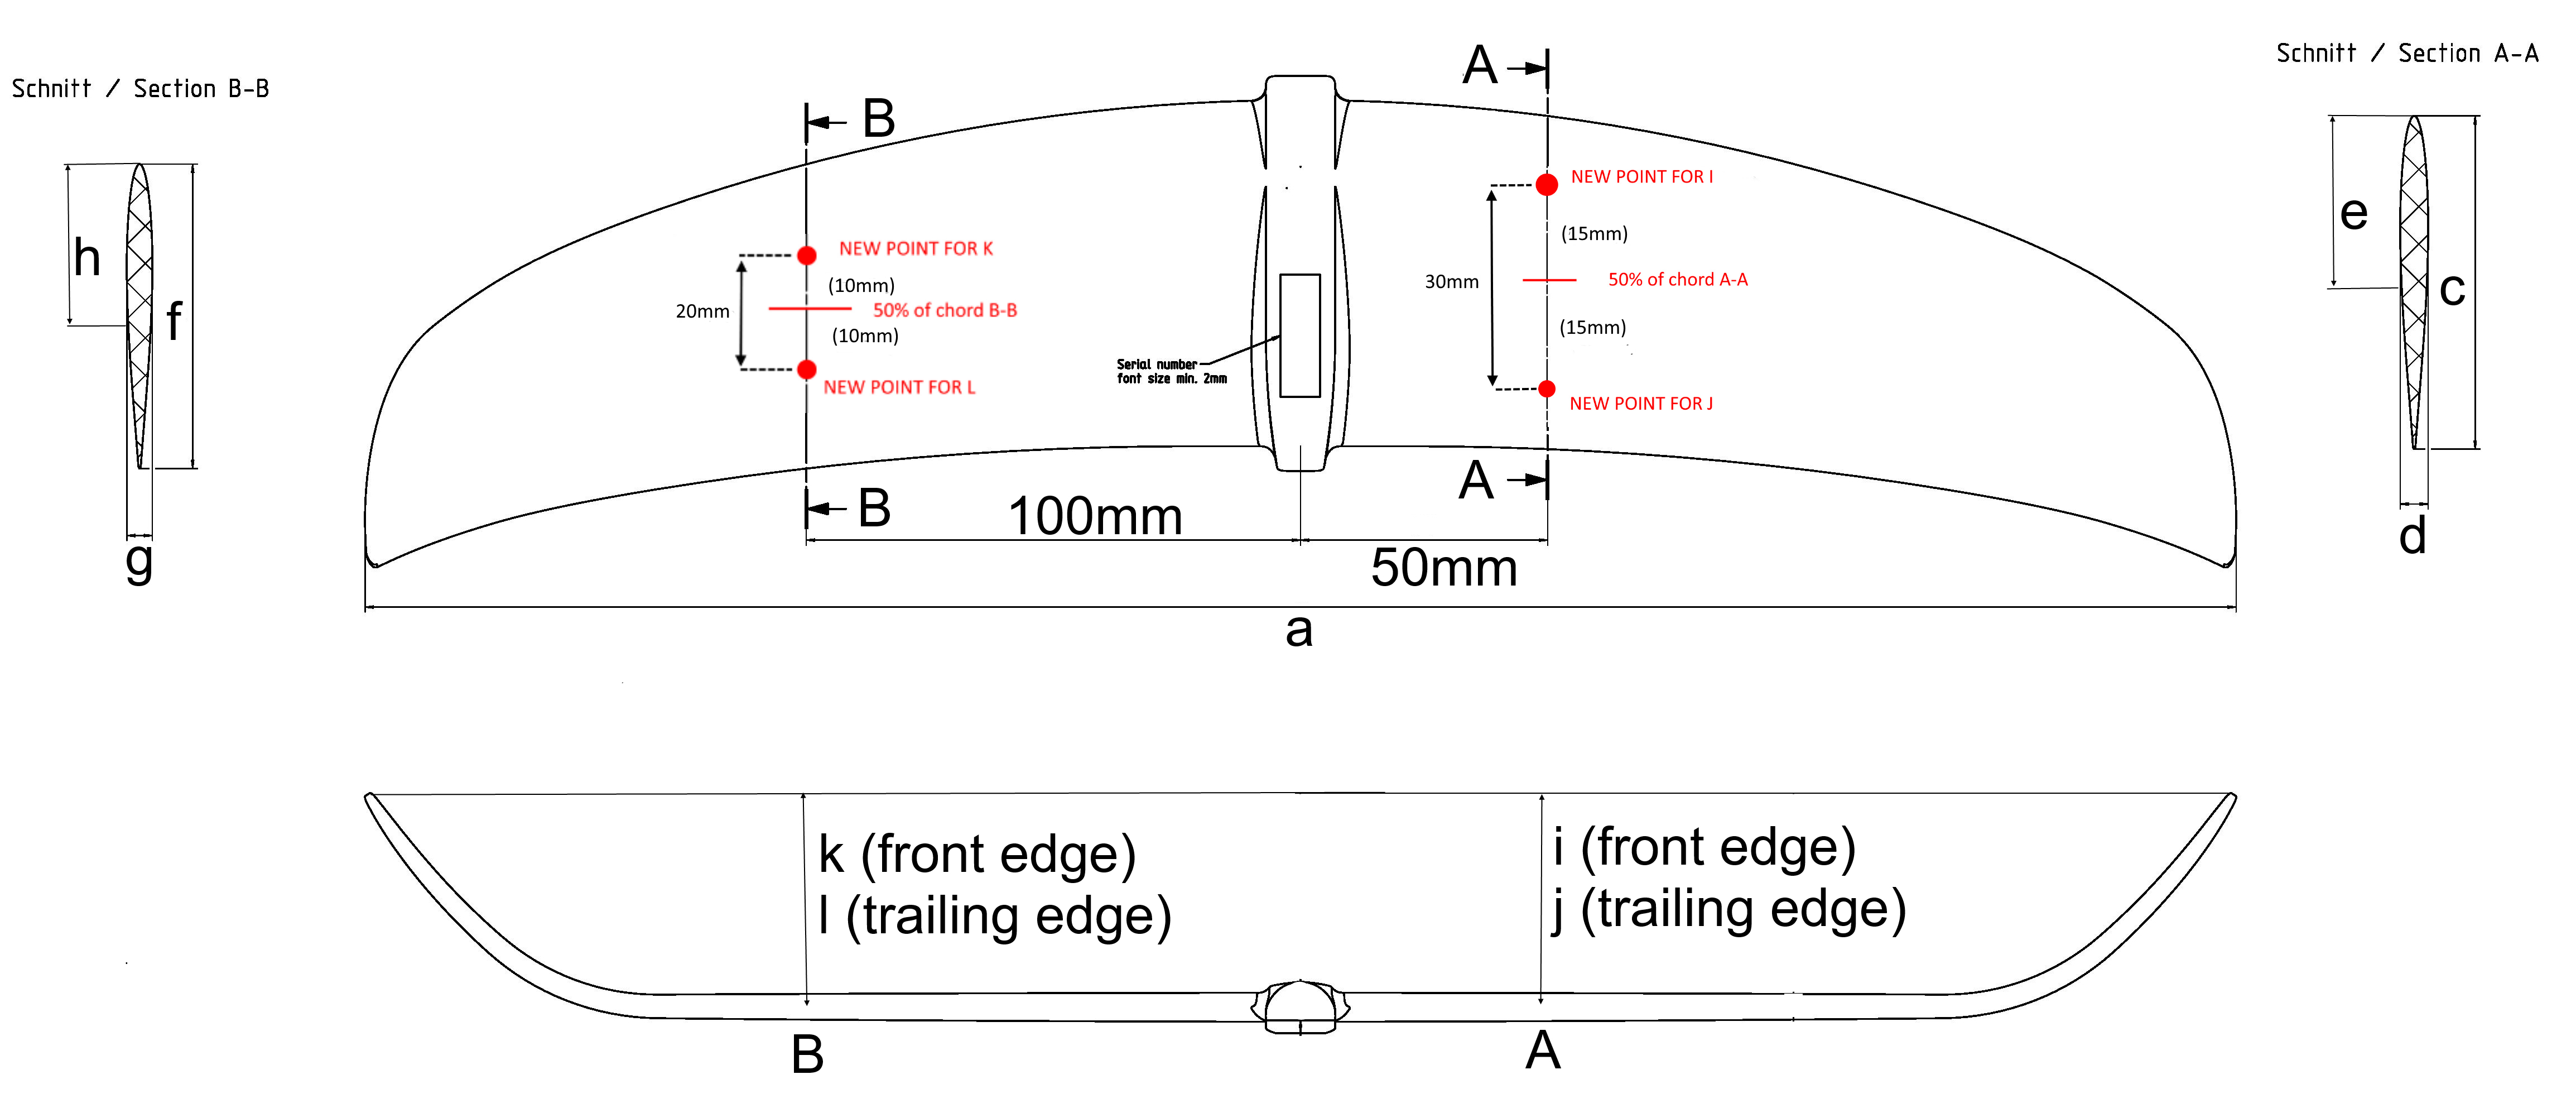 foil measurements rearwing new